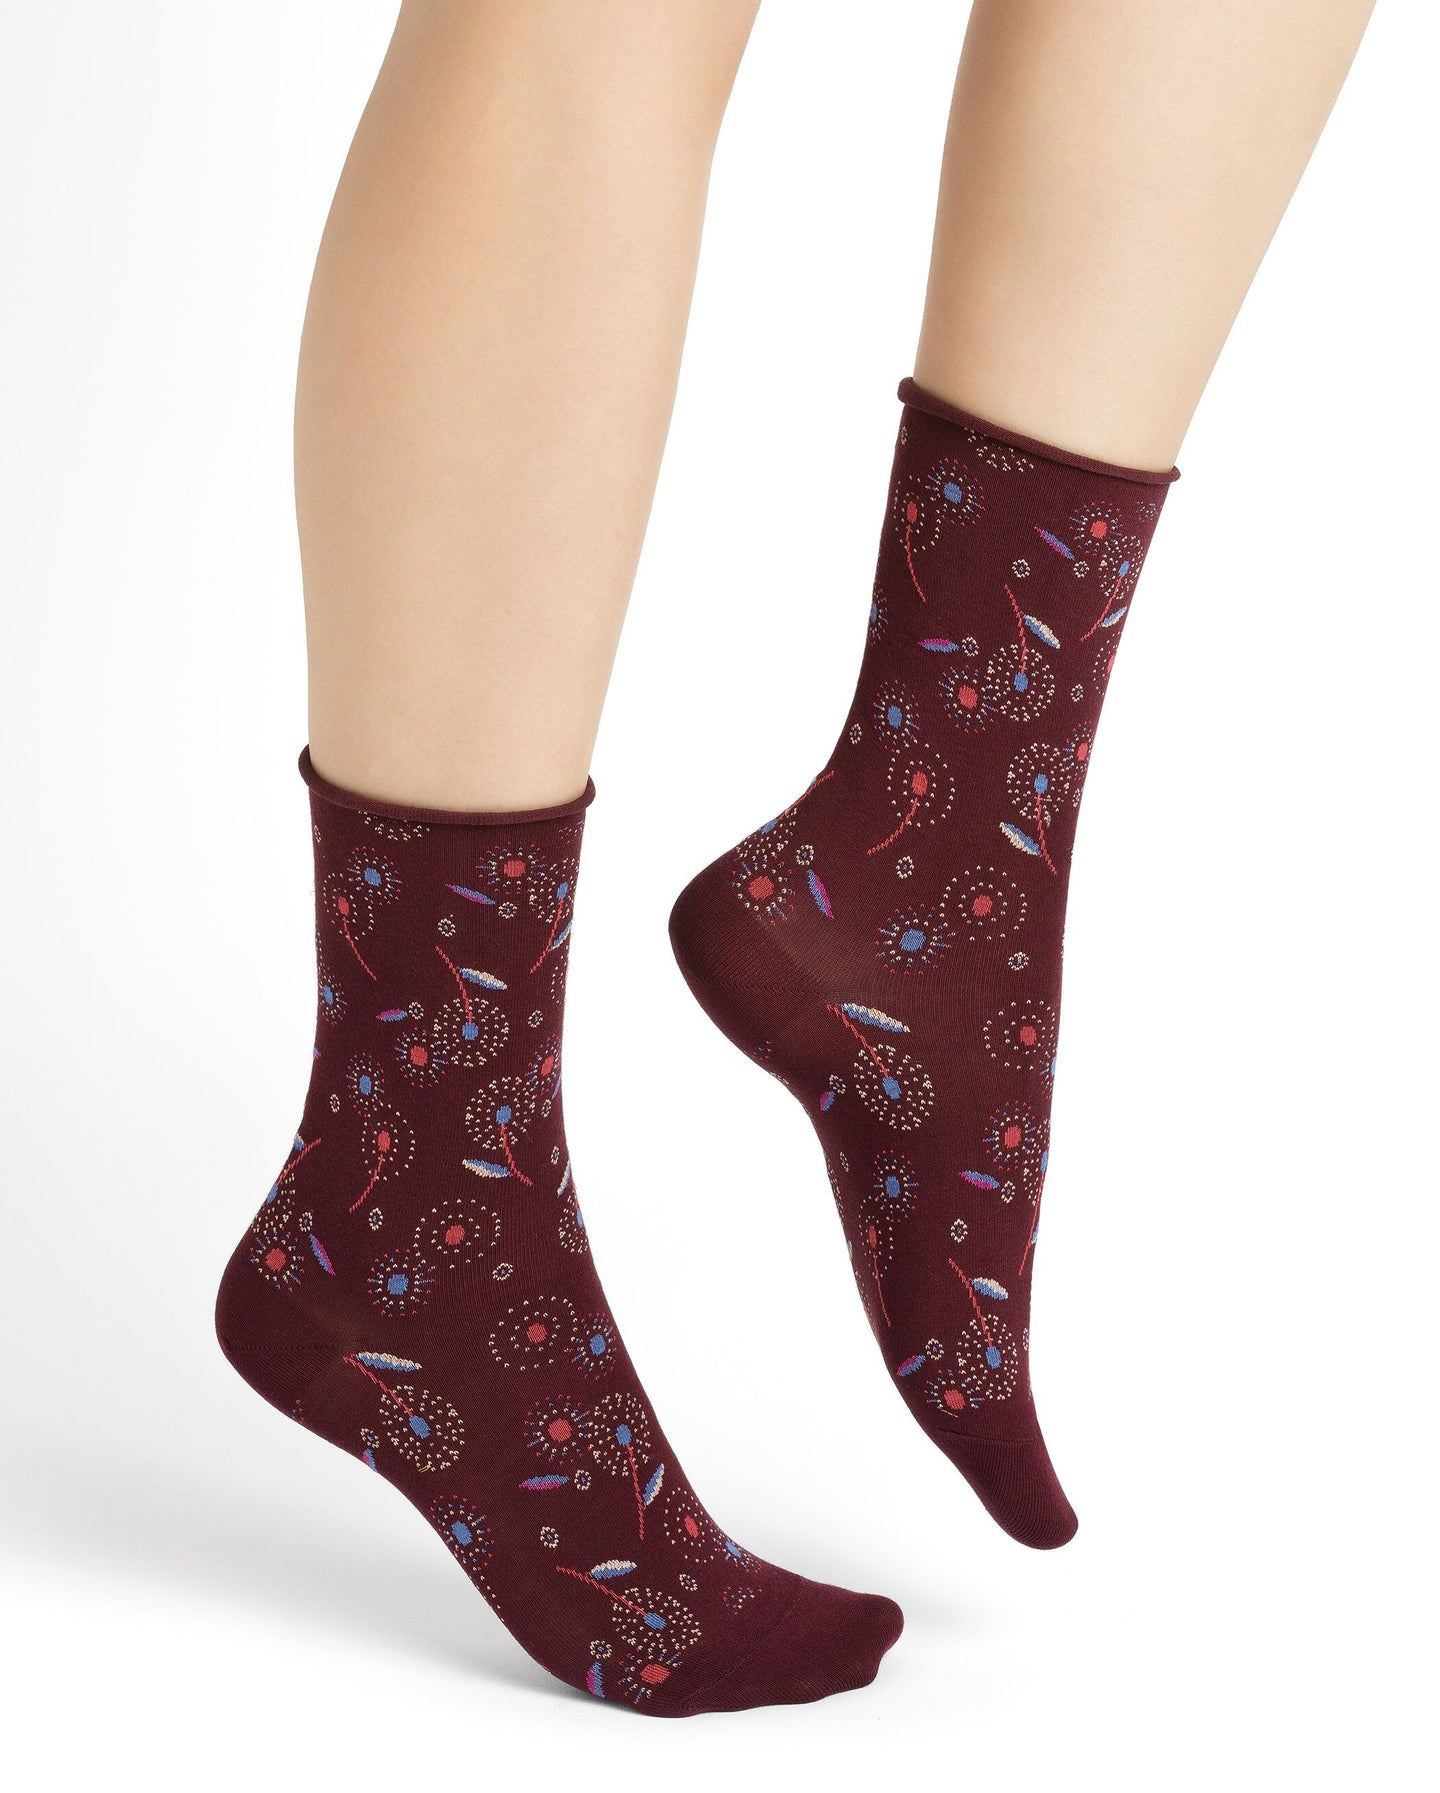 6250 Velvet Cotton Socks with Dandelion Pattern